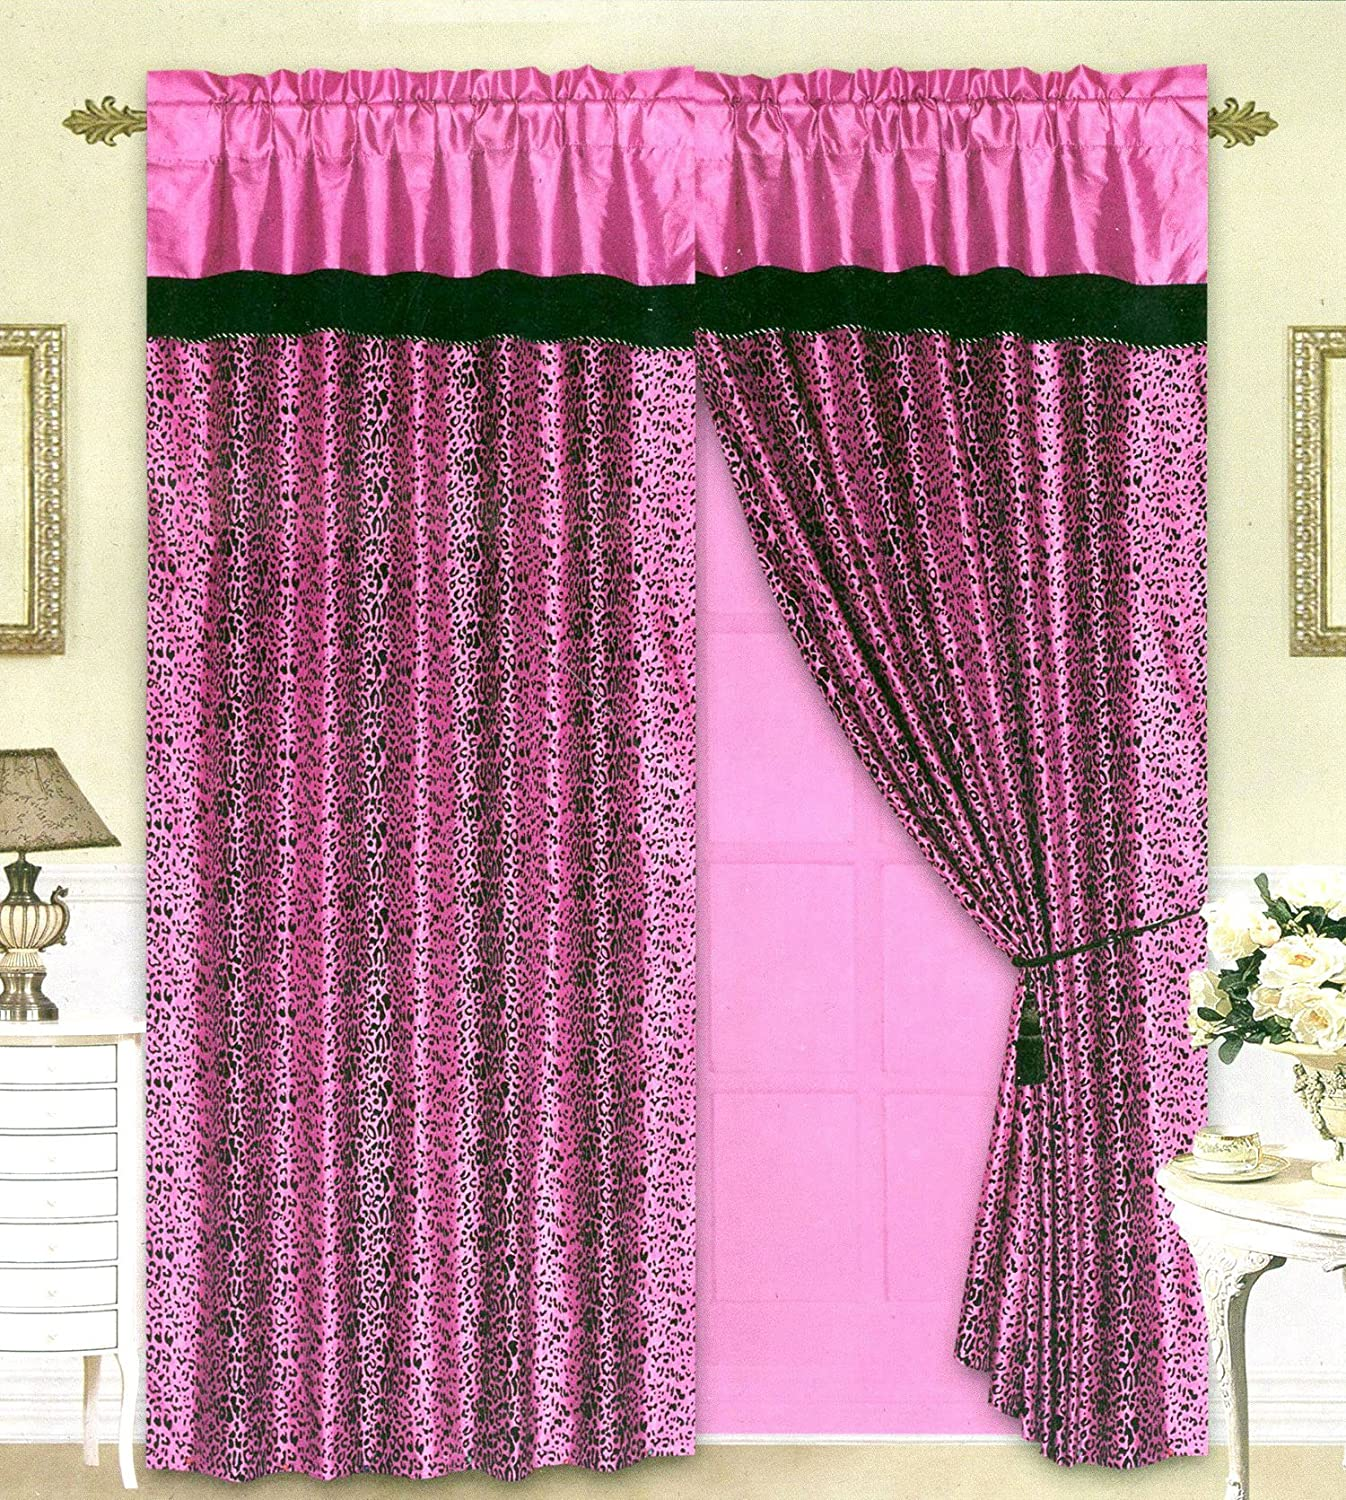 Pink cheetah print curtains - Amazon Com Black Pink Flocking Leopard Satin Window Curtain Drape Set Sheer Liner Valance Home Kitchen